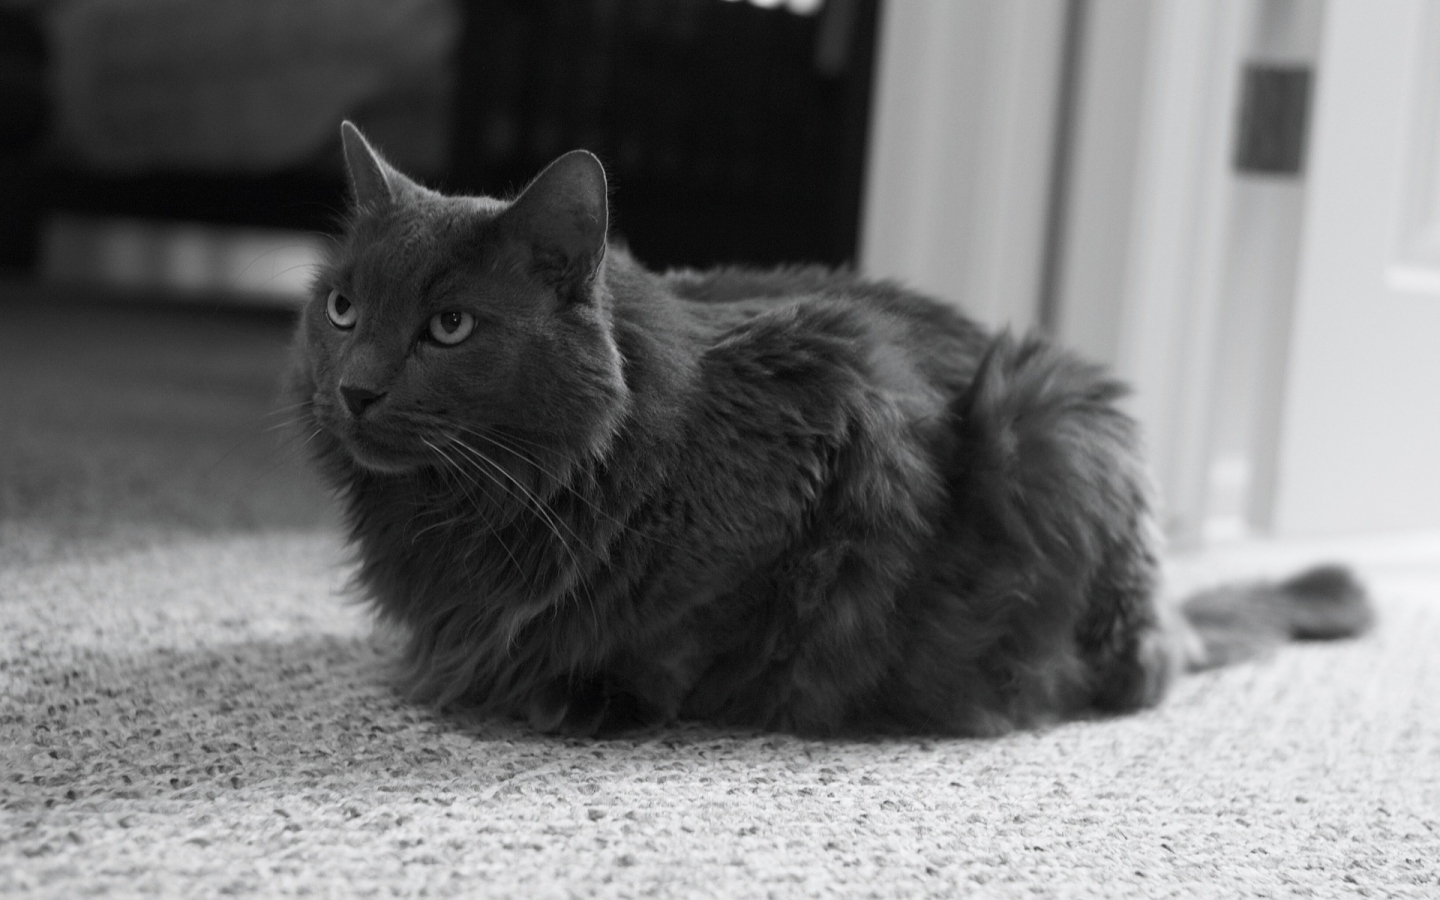 Monochrome Nebelung Cat for 1440 x 900 widescreen resolution